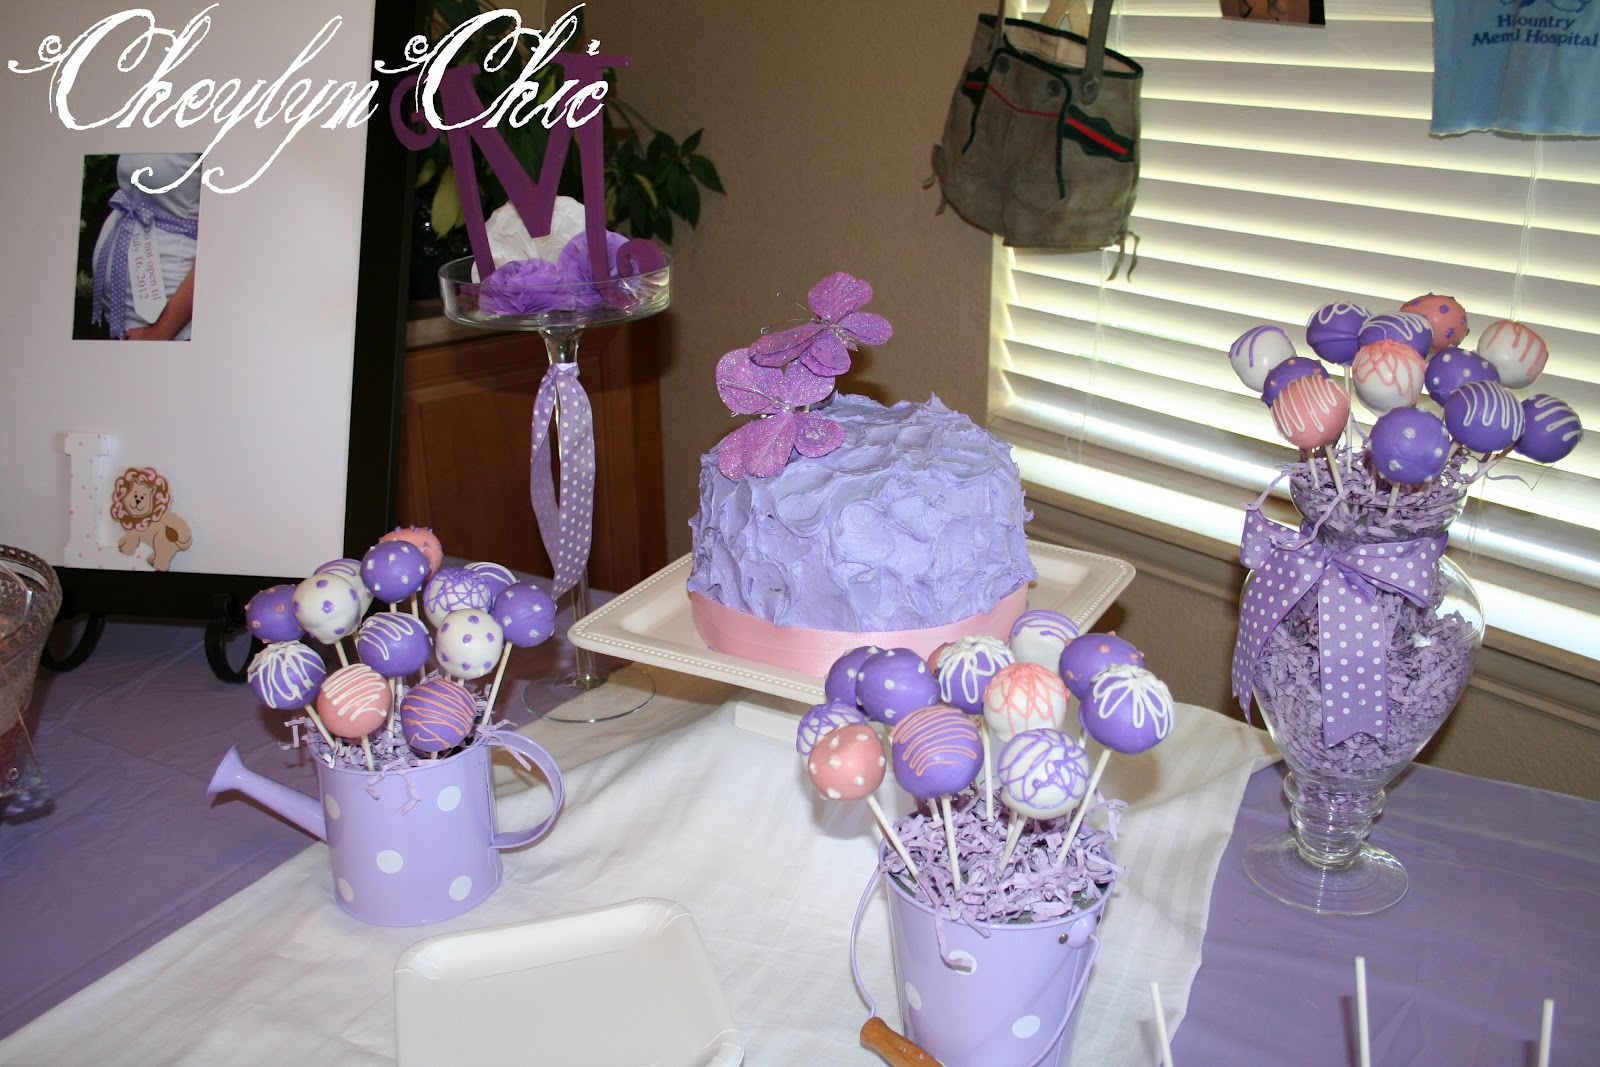 cheylyn chic loving lavender baby shower lavender baby shower